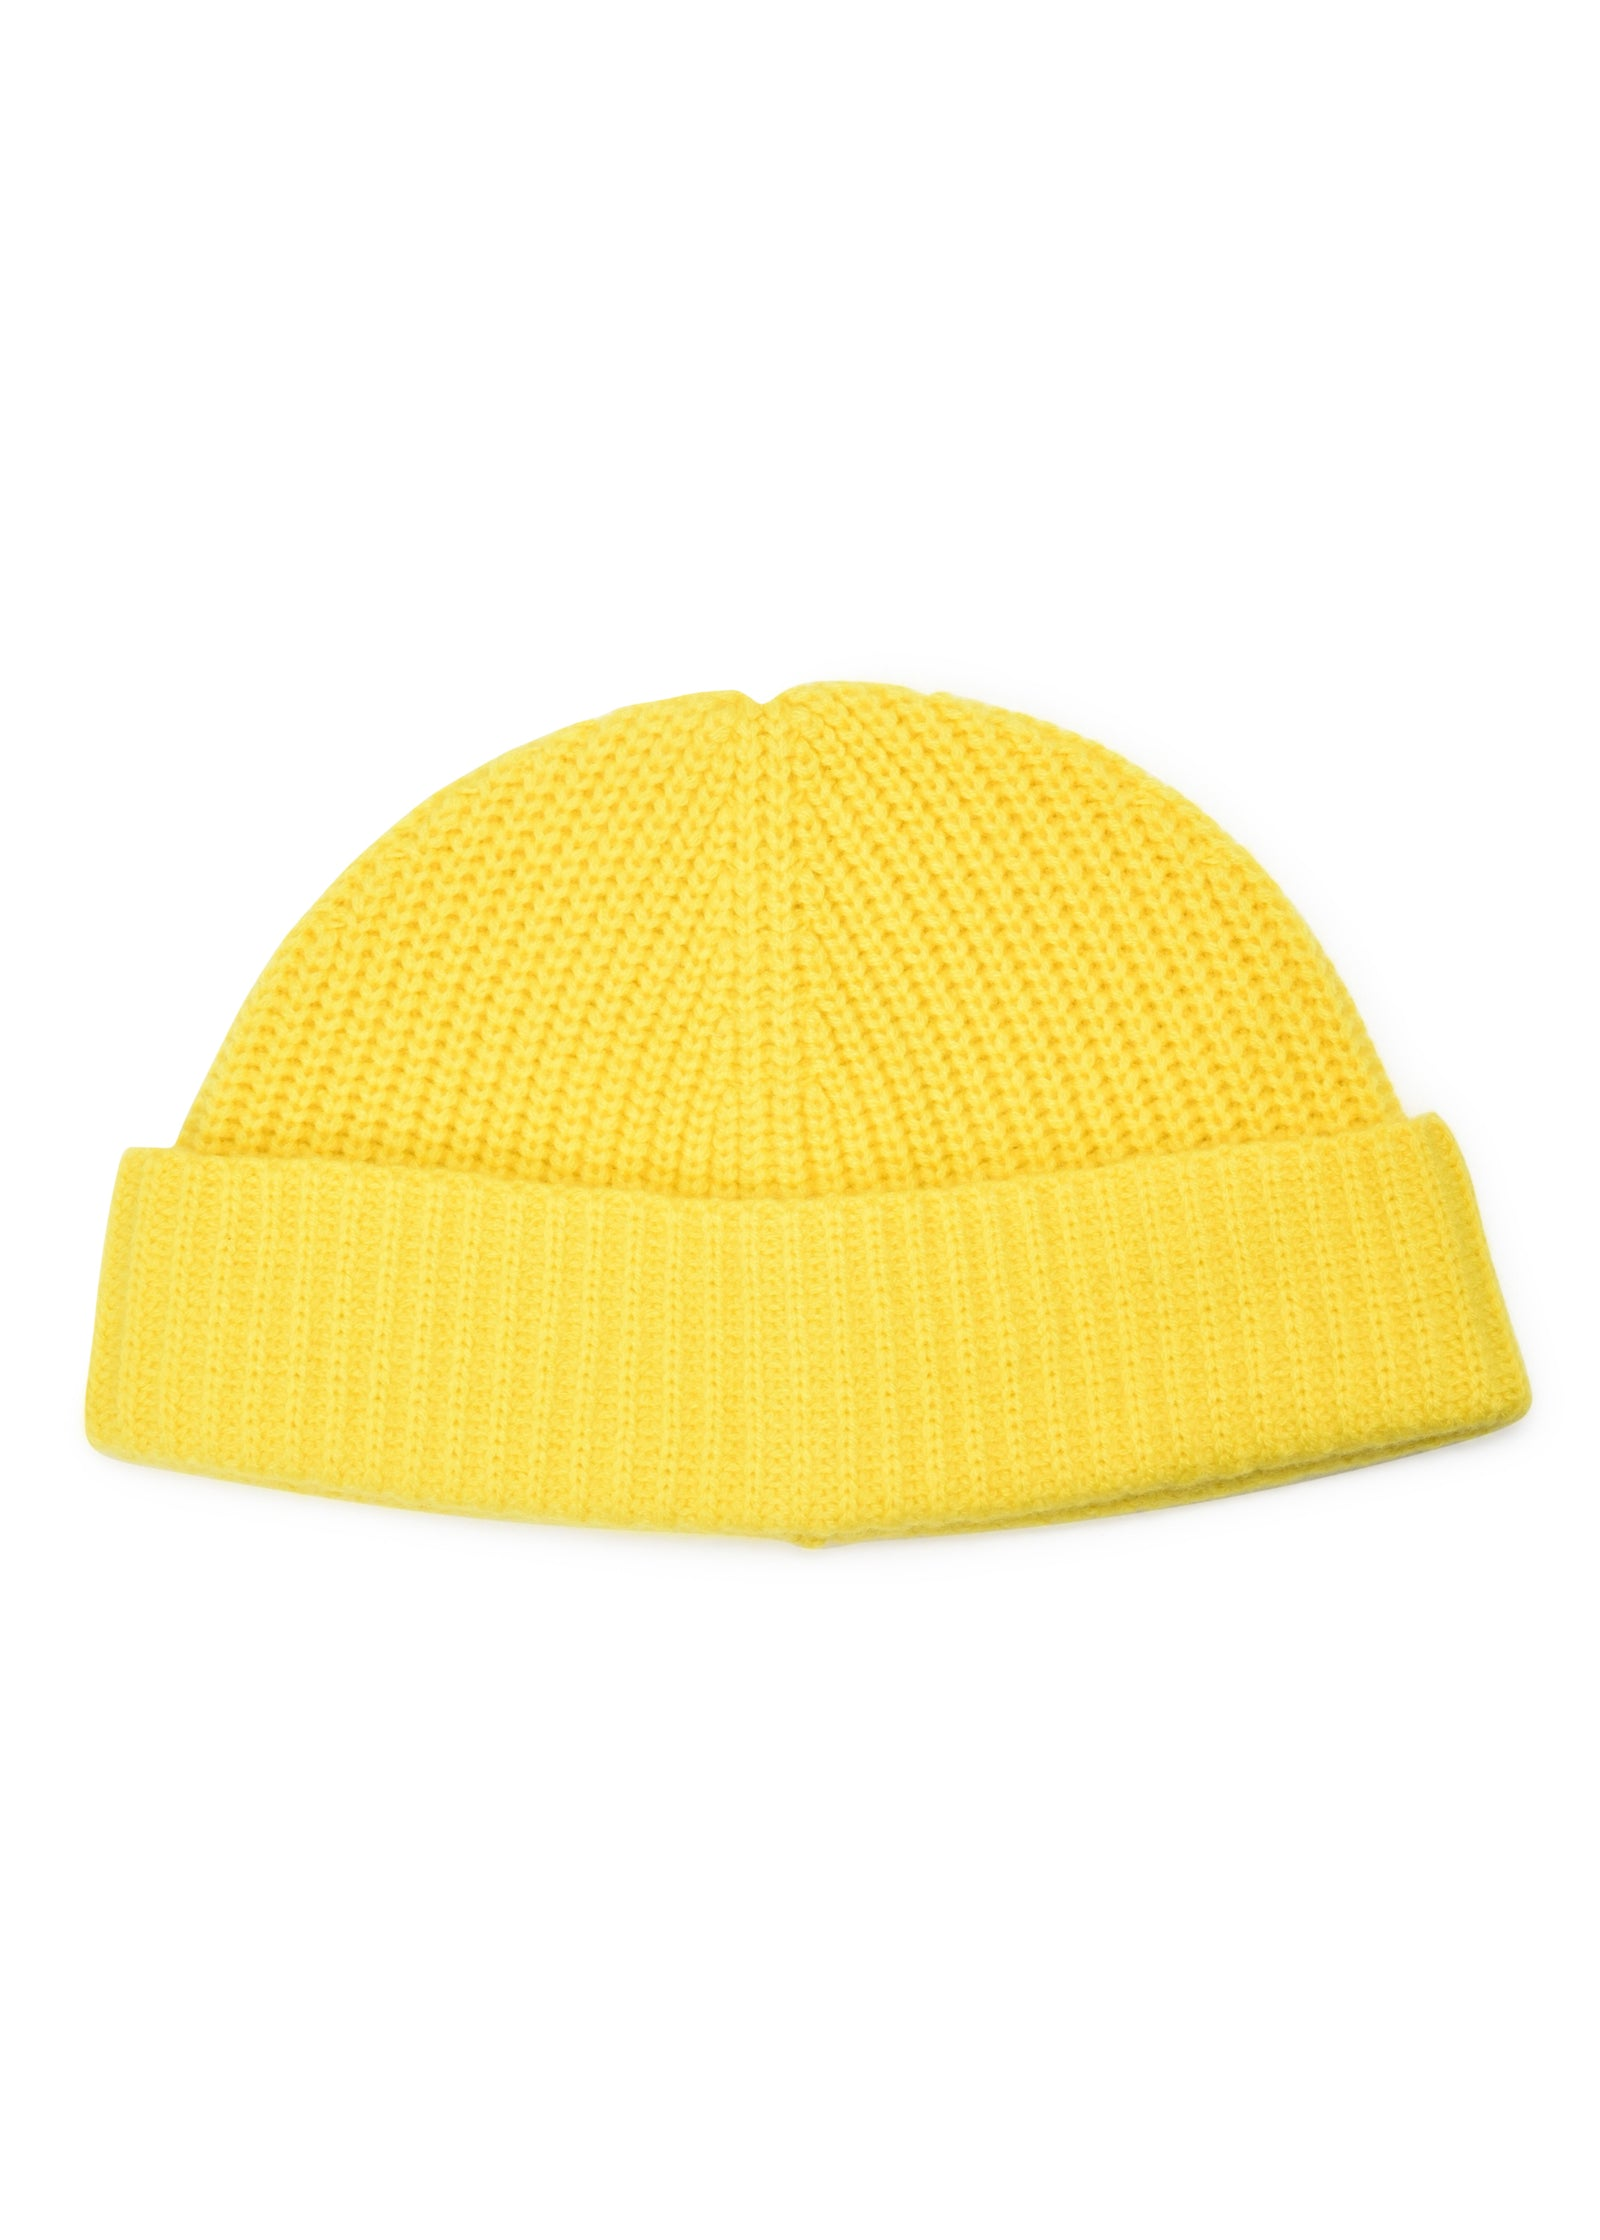 Cashmere Cap in Citrus